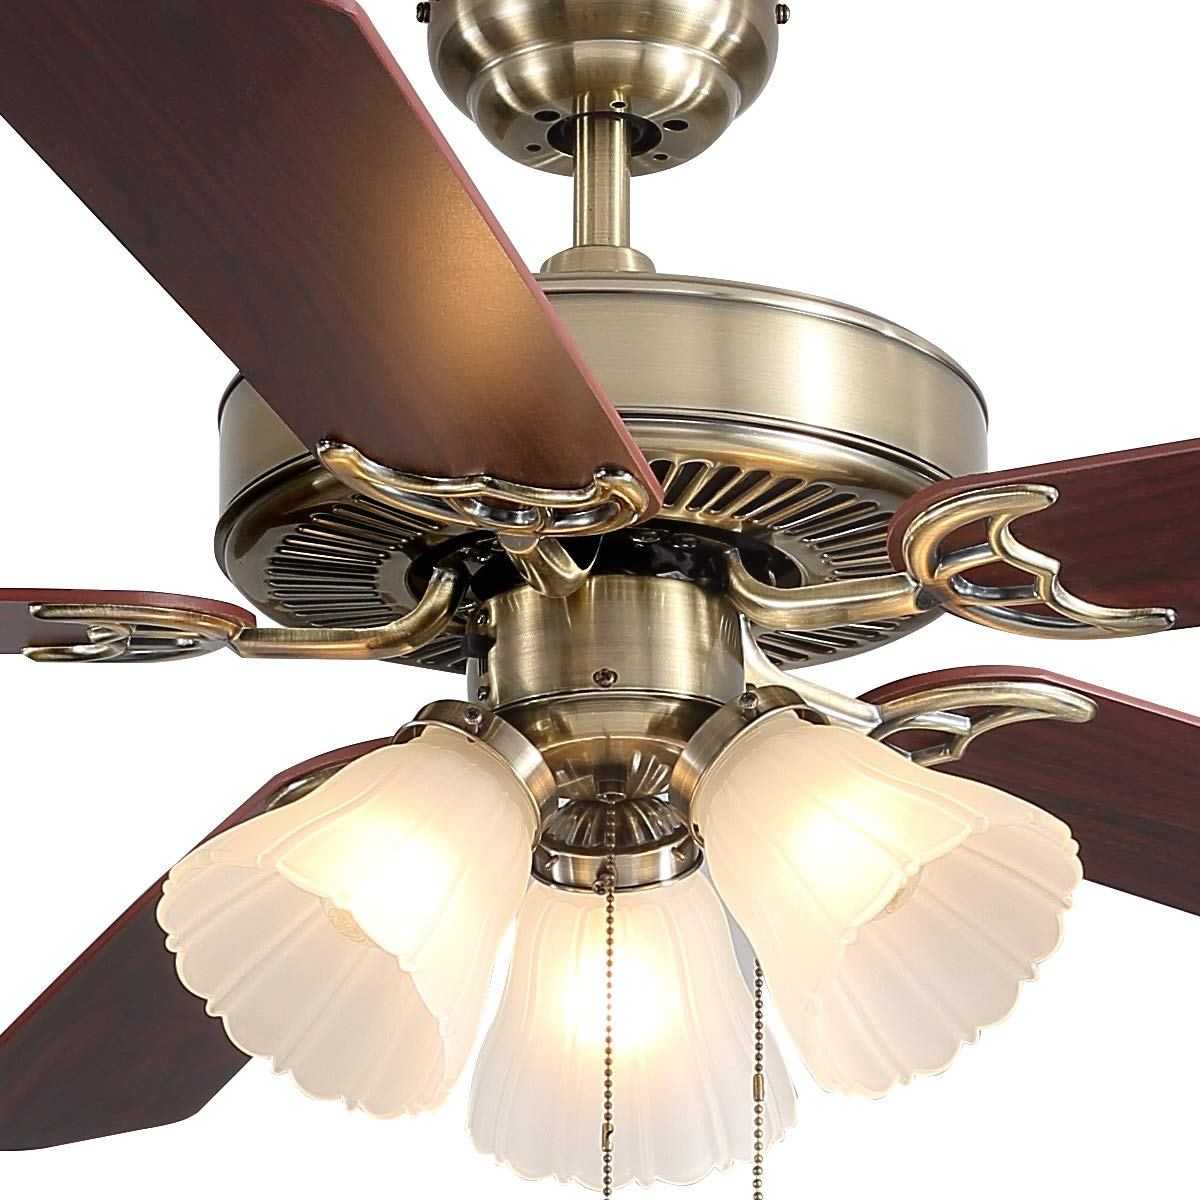 KMM 52-inch Indoor Ceiling Fan,Pull Switch Control,Motor Can be reversed,Wood Ceiling Fan Blade Match Green Bronze Cover,for Dining Room Bedroom Living Room Kitchen.